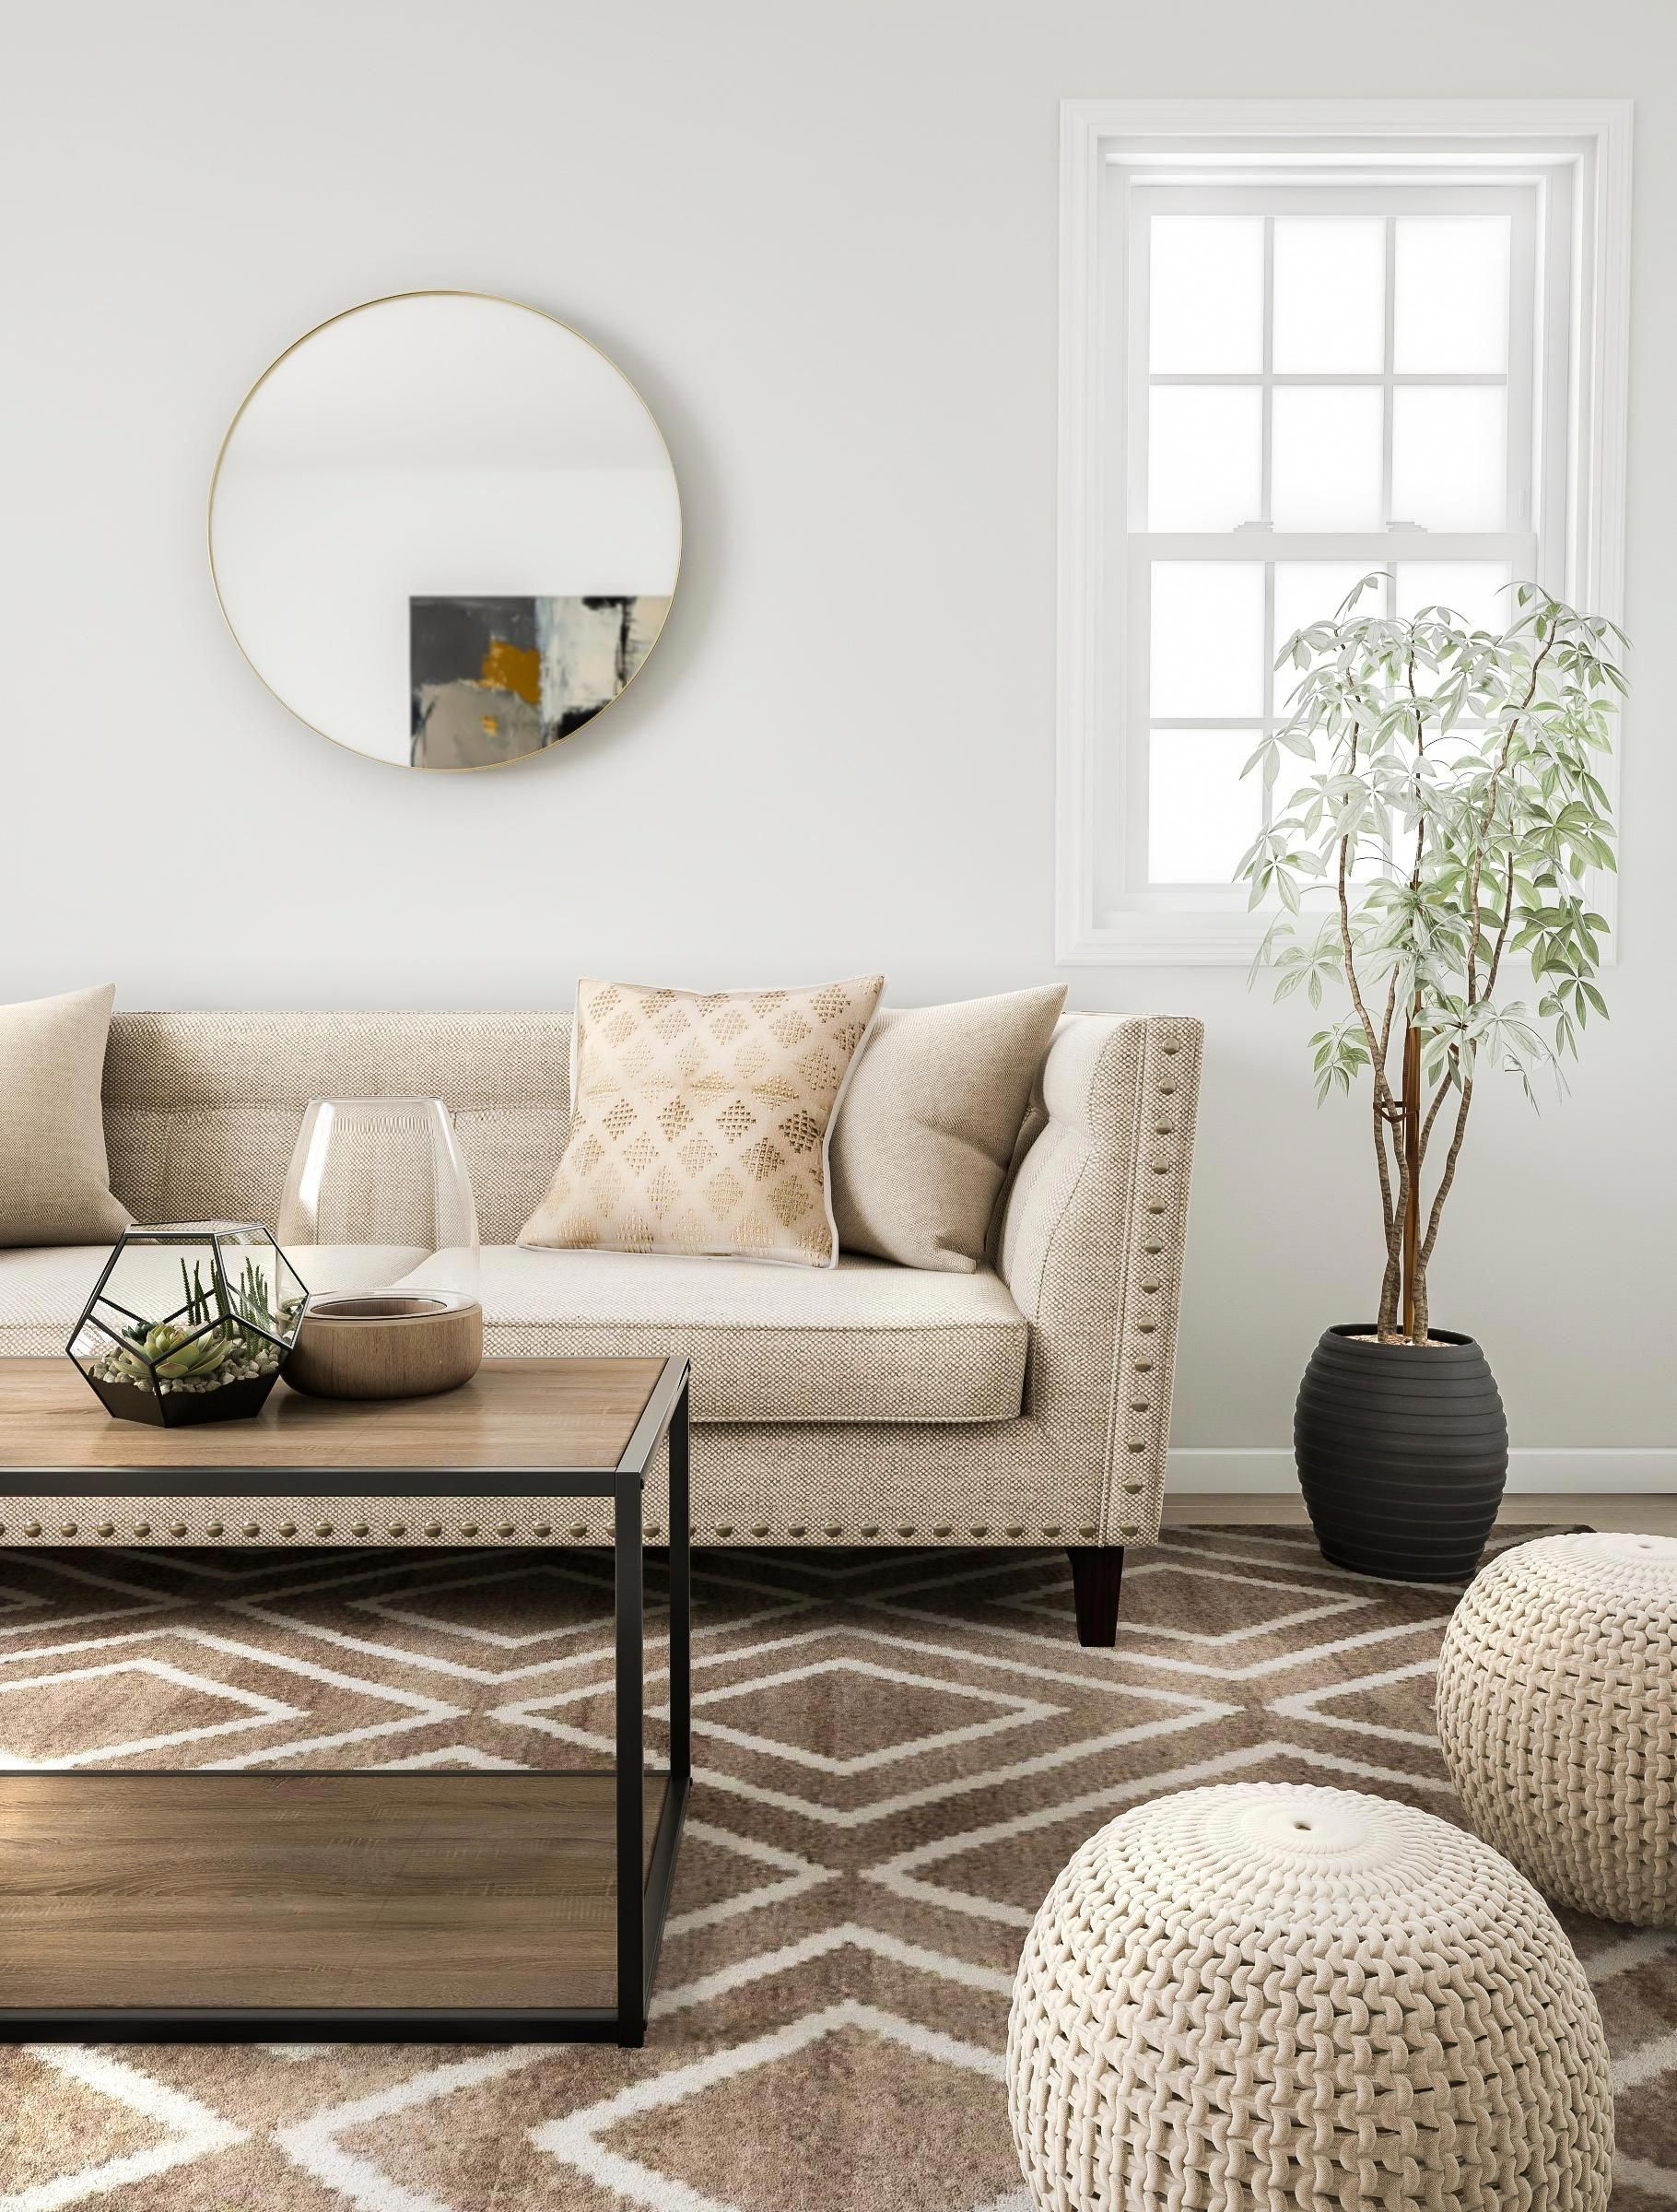 Redecorating Living Room: Redecorate Your Living Room This Weekend. The Warm-toned